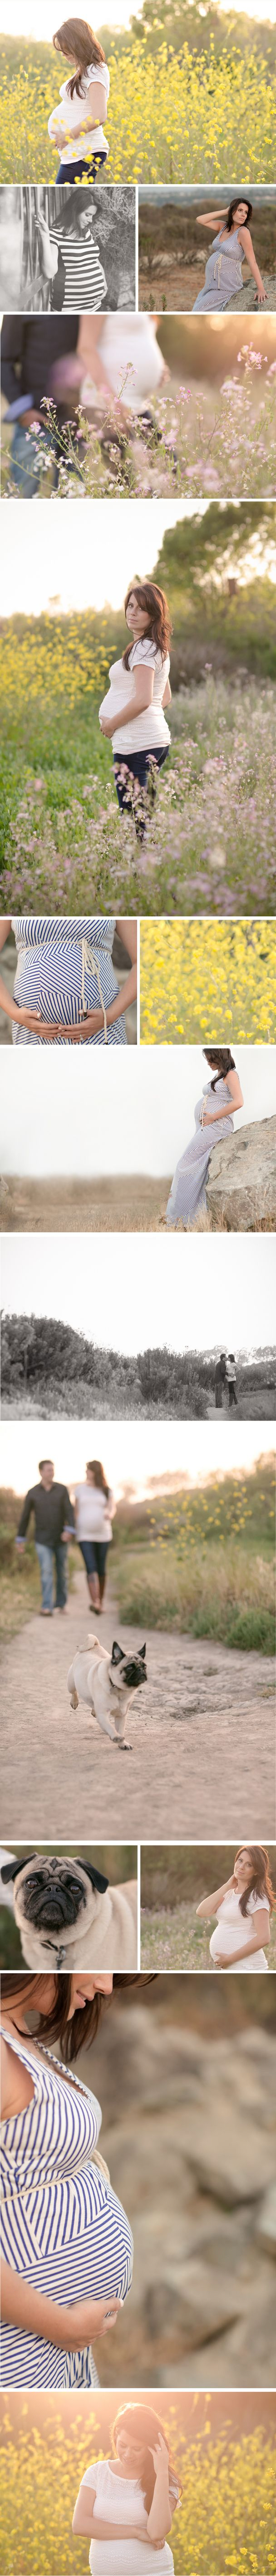 La Petite Peach - BrittRene Maternity / Pregnancy Session Photo